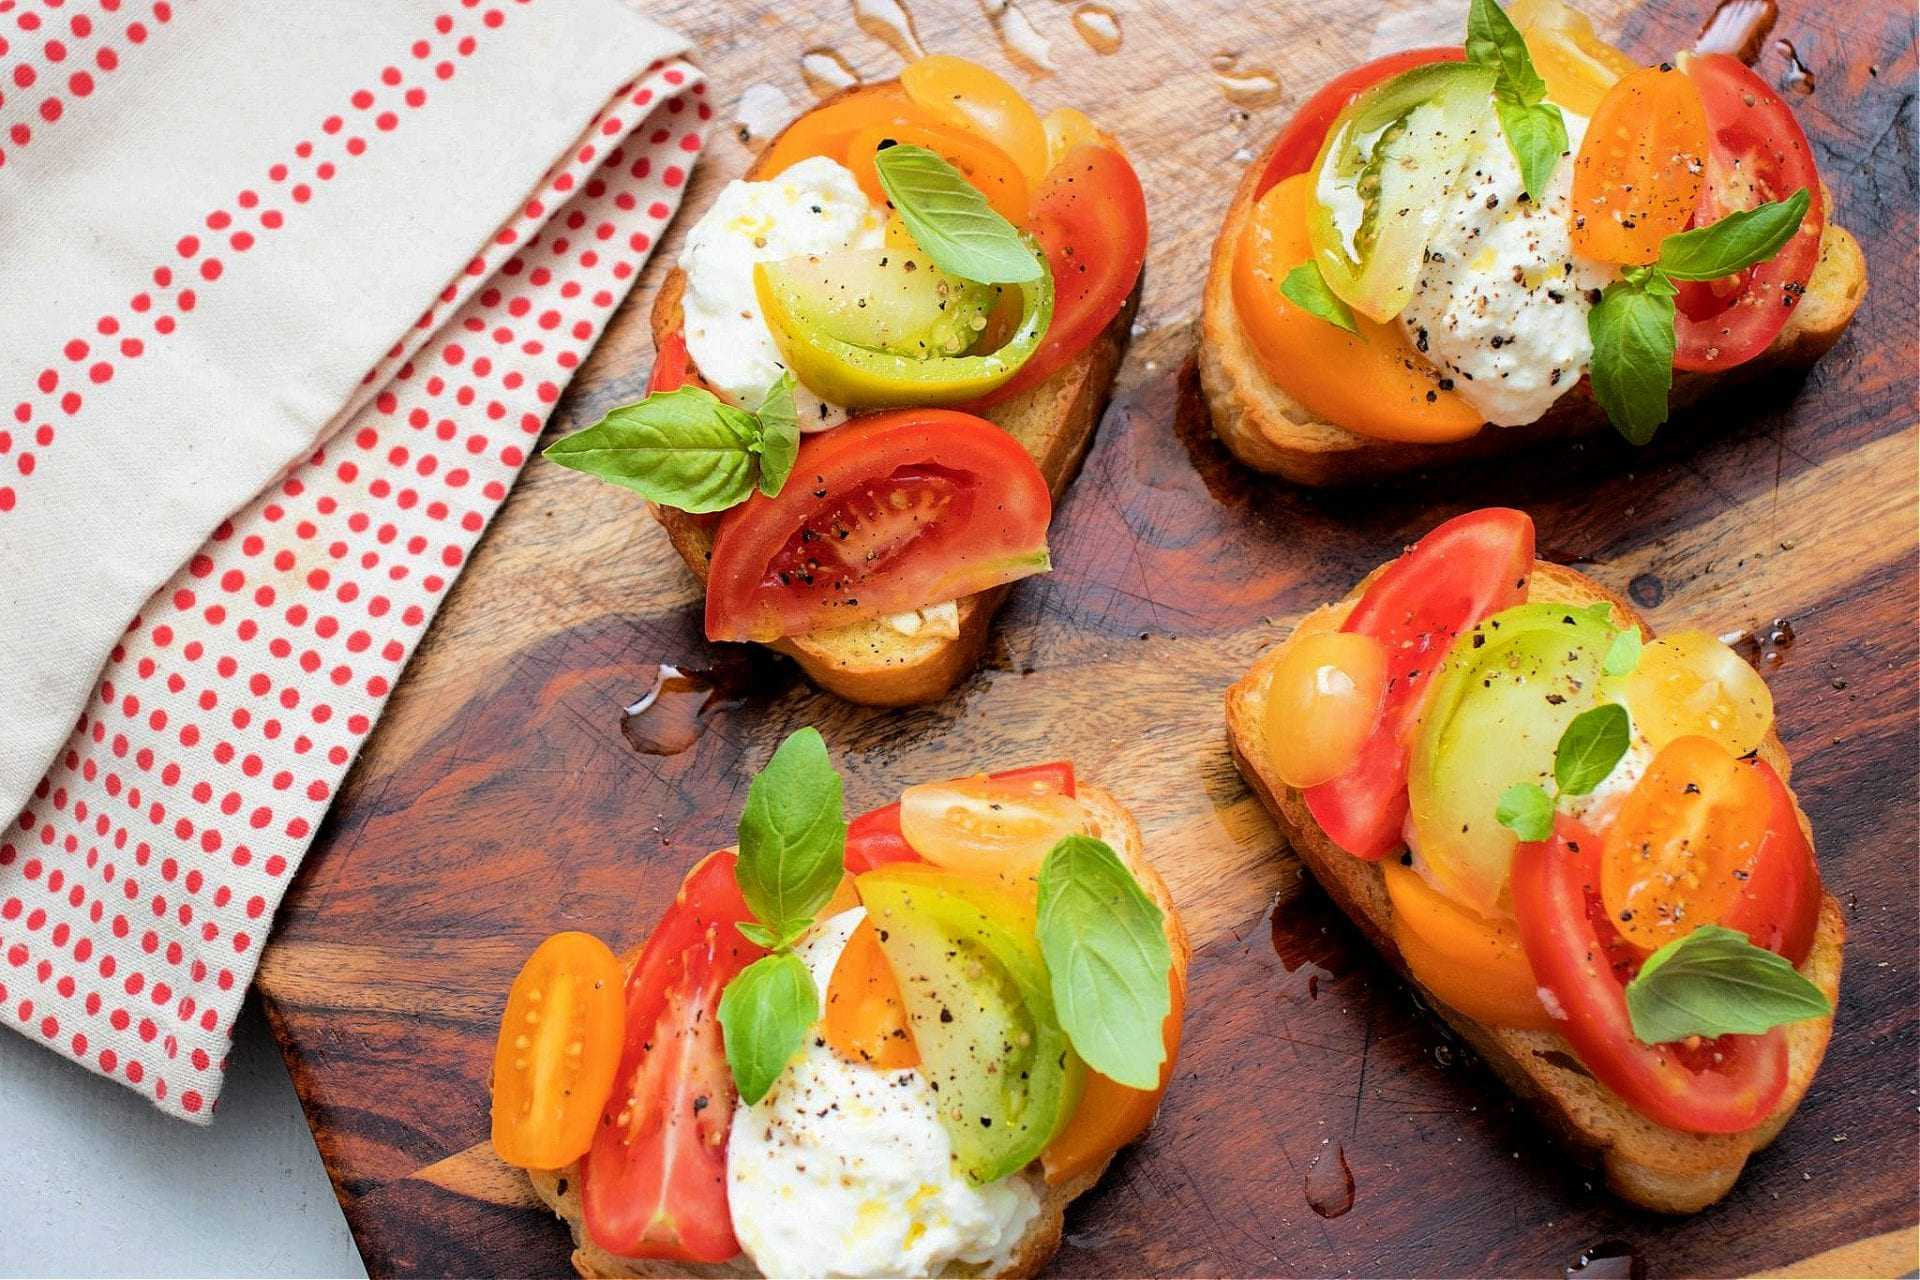 Olive Oil Pomodoro Toasts with Burrata